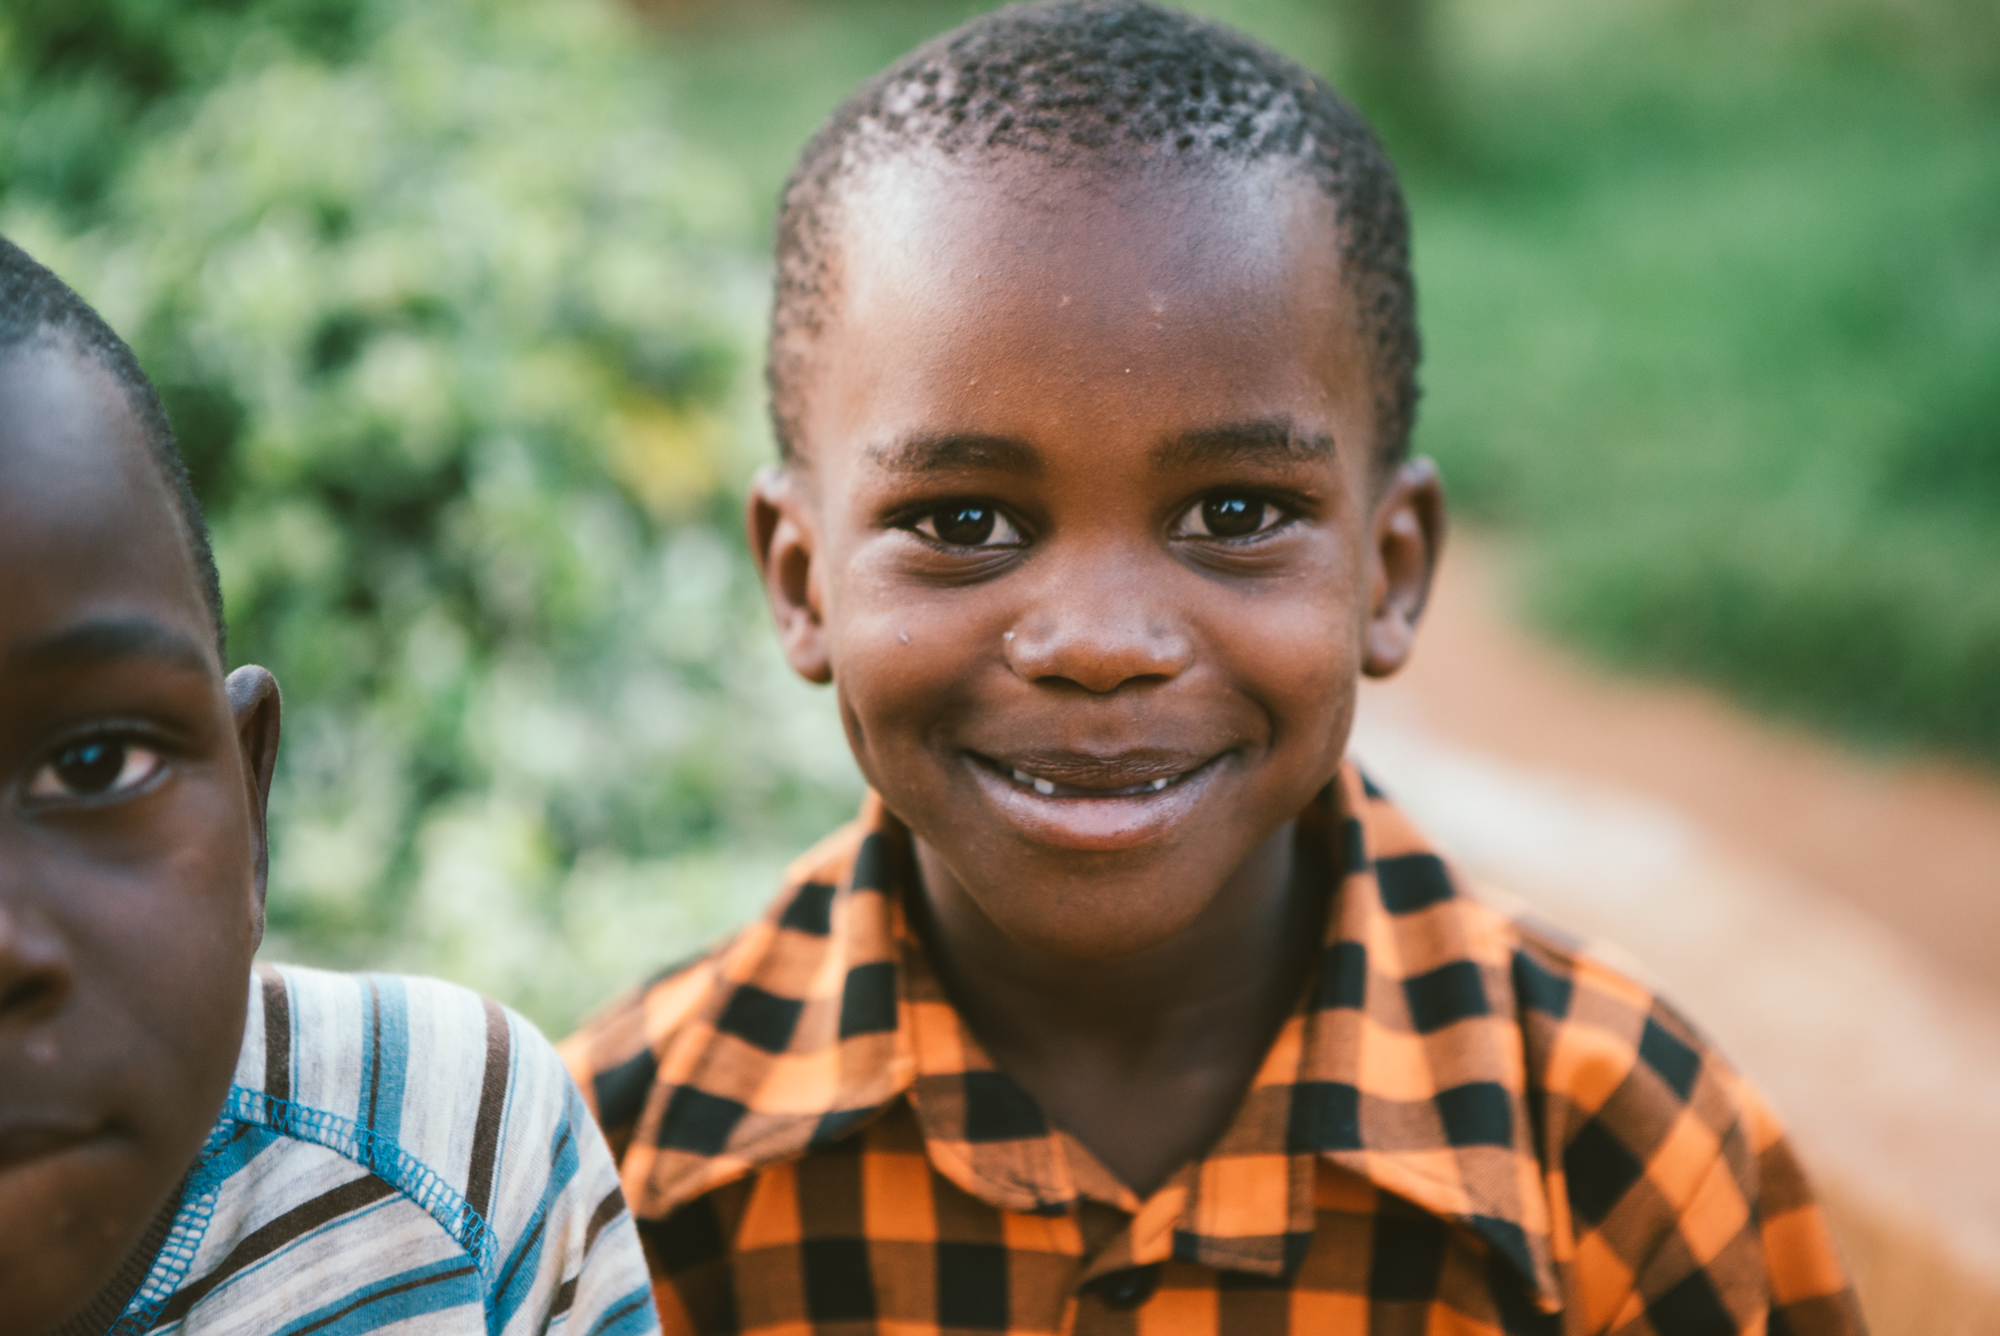 Safe & Secure Childcare - We have a children's home for around 100 orphans and vulnerable children. They have learned to build friendships with those from other tribes and clans.We encourage them that just because their parents died doesn't mean their dreams have to die. They are encouraged to fulfill their dreams.